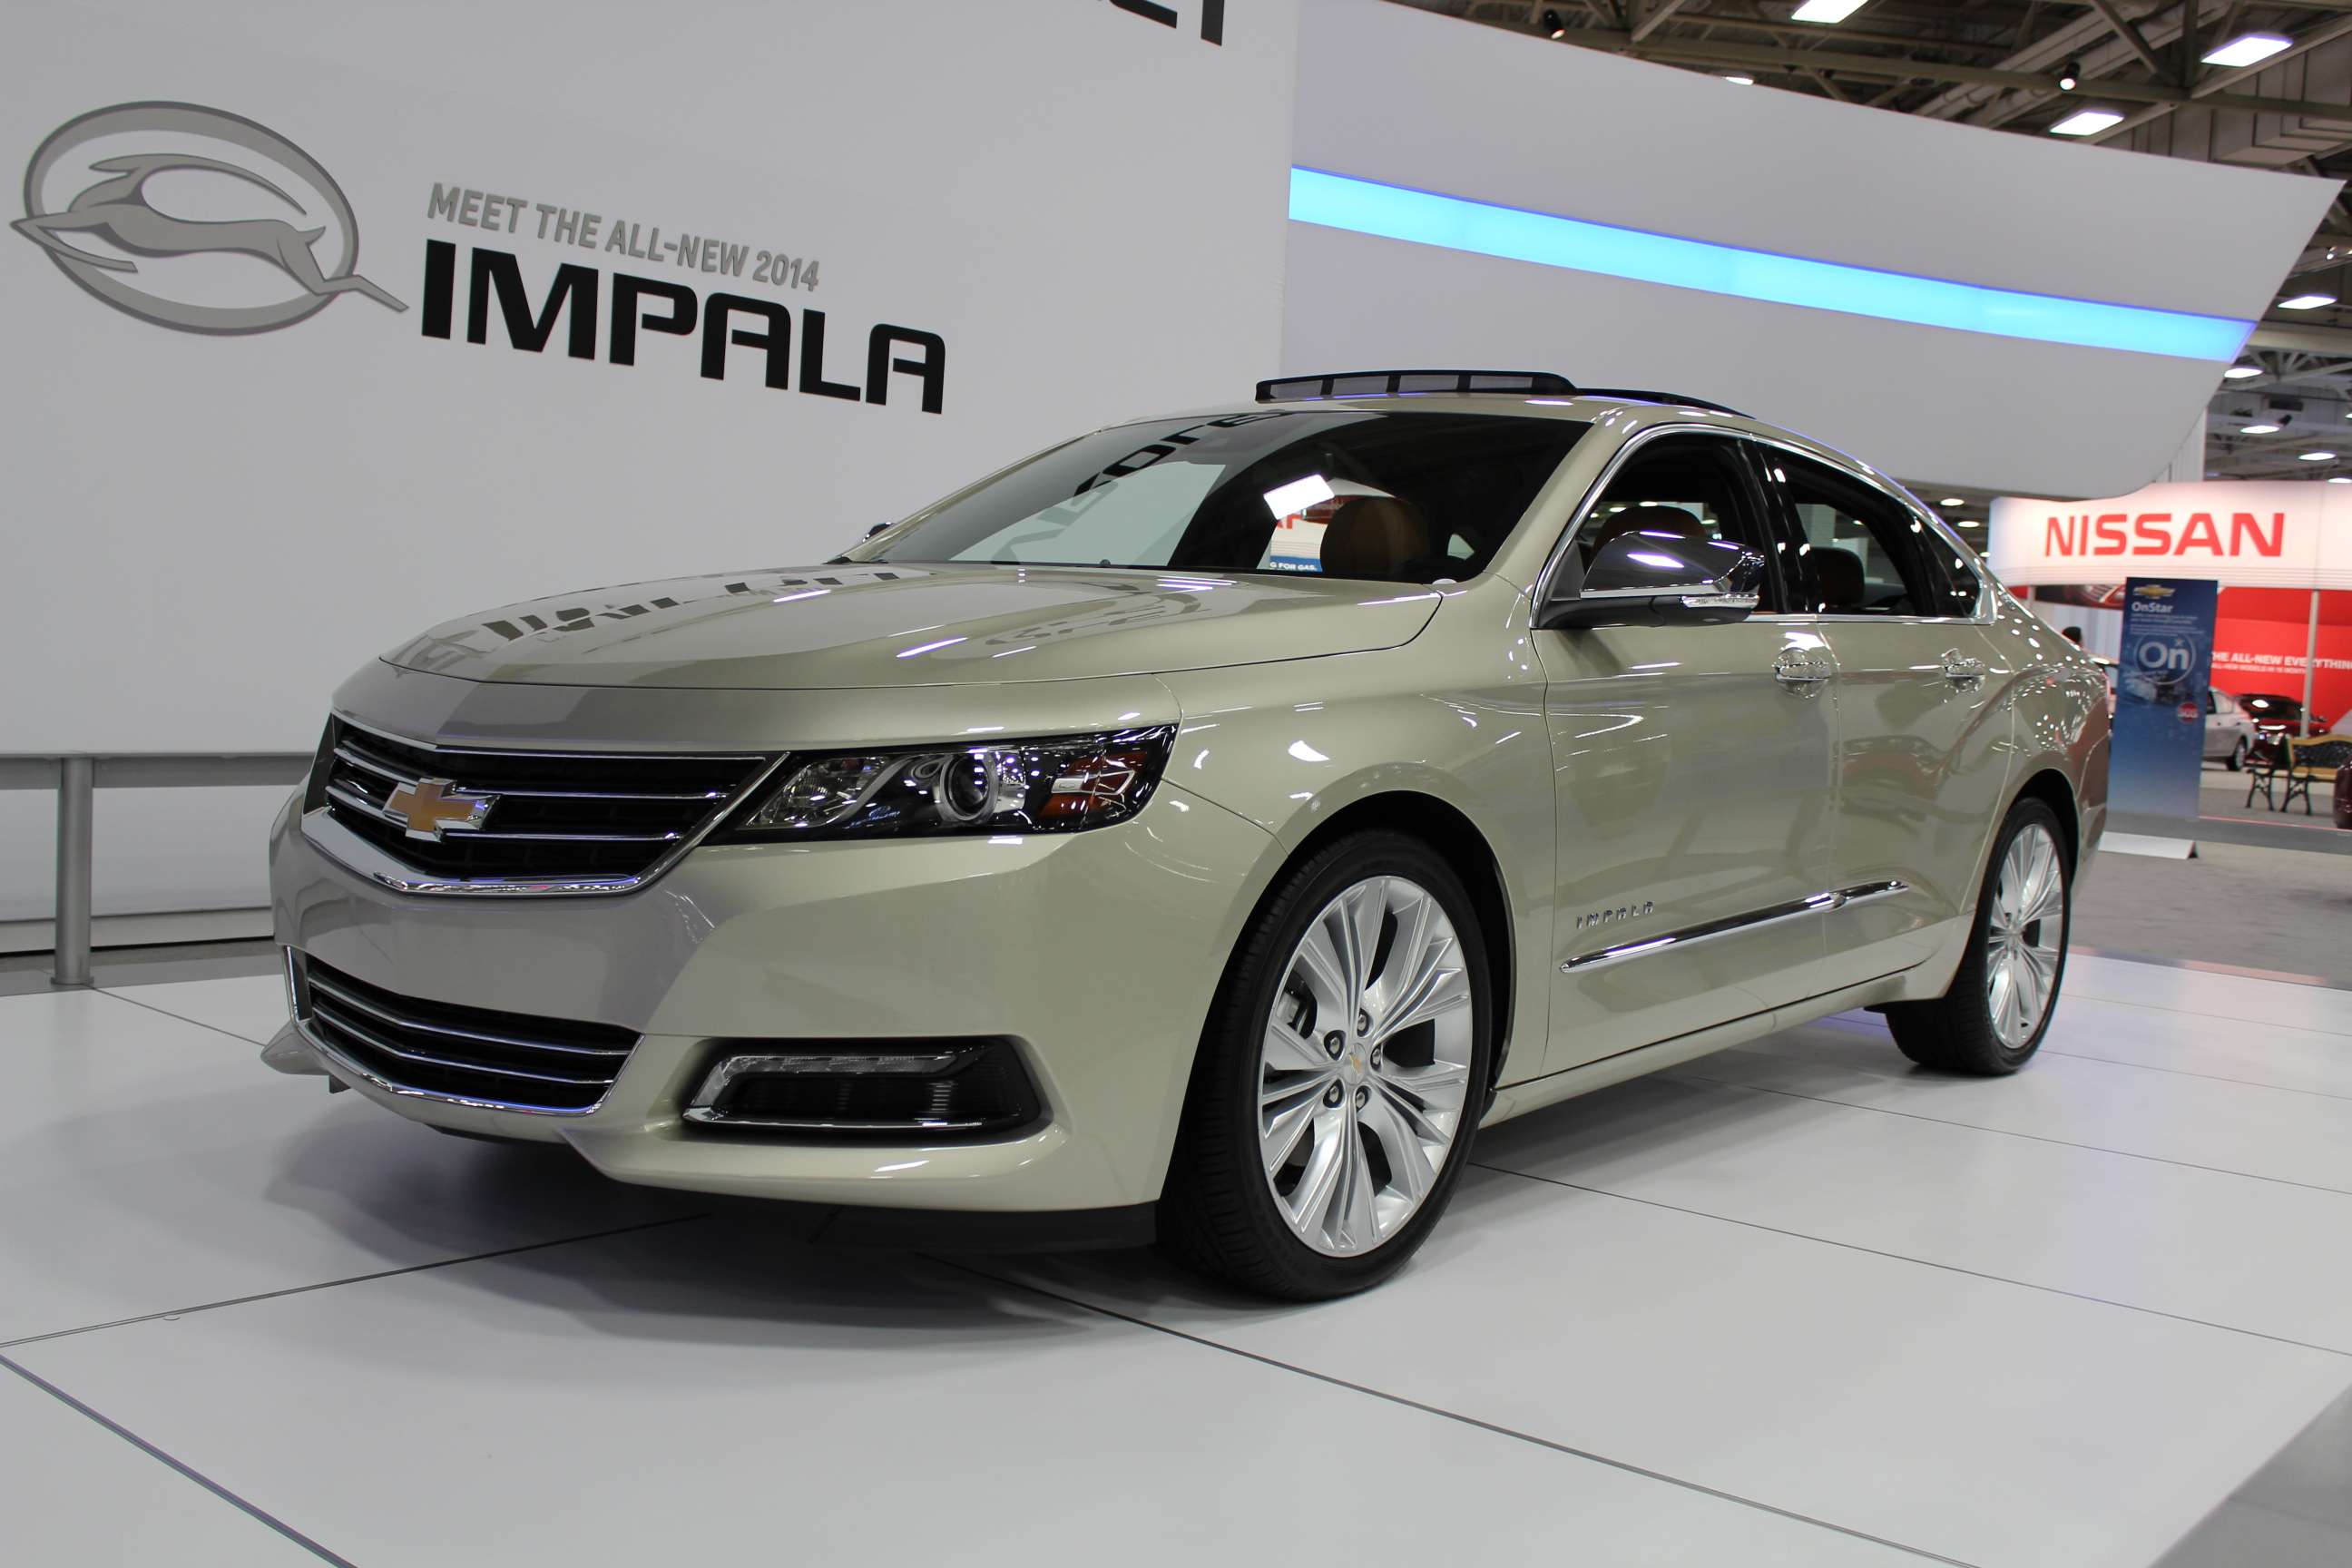 2014 Chevrolet Impala On Display At The Dallas Auto Show